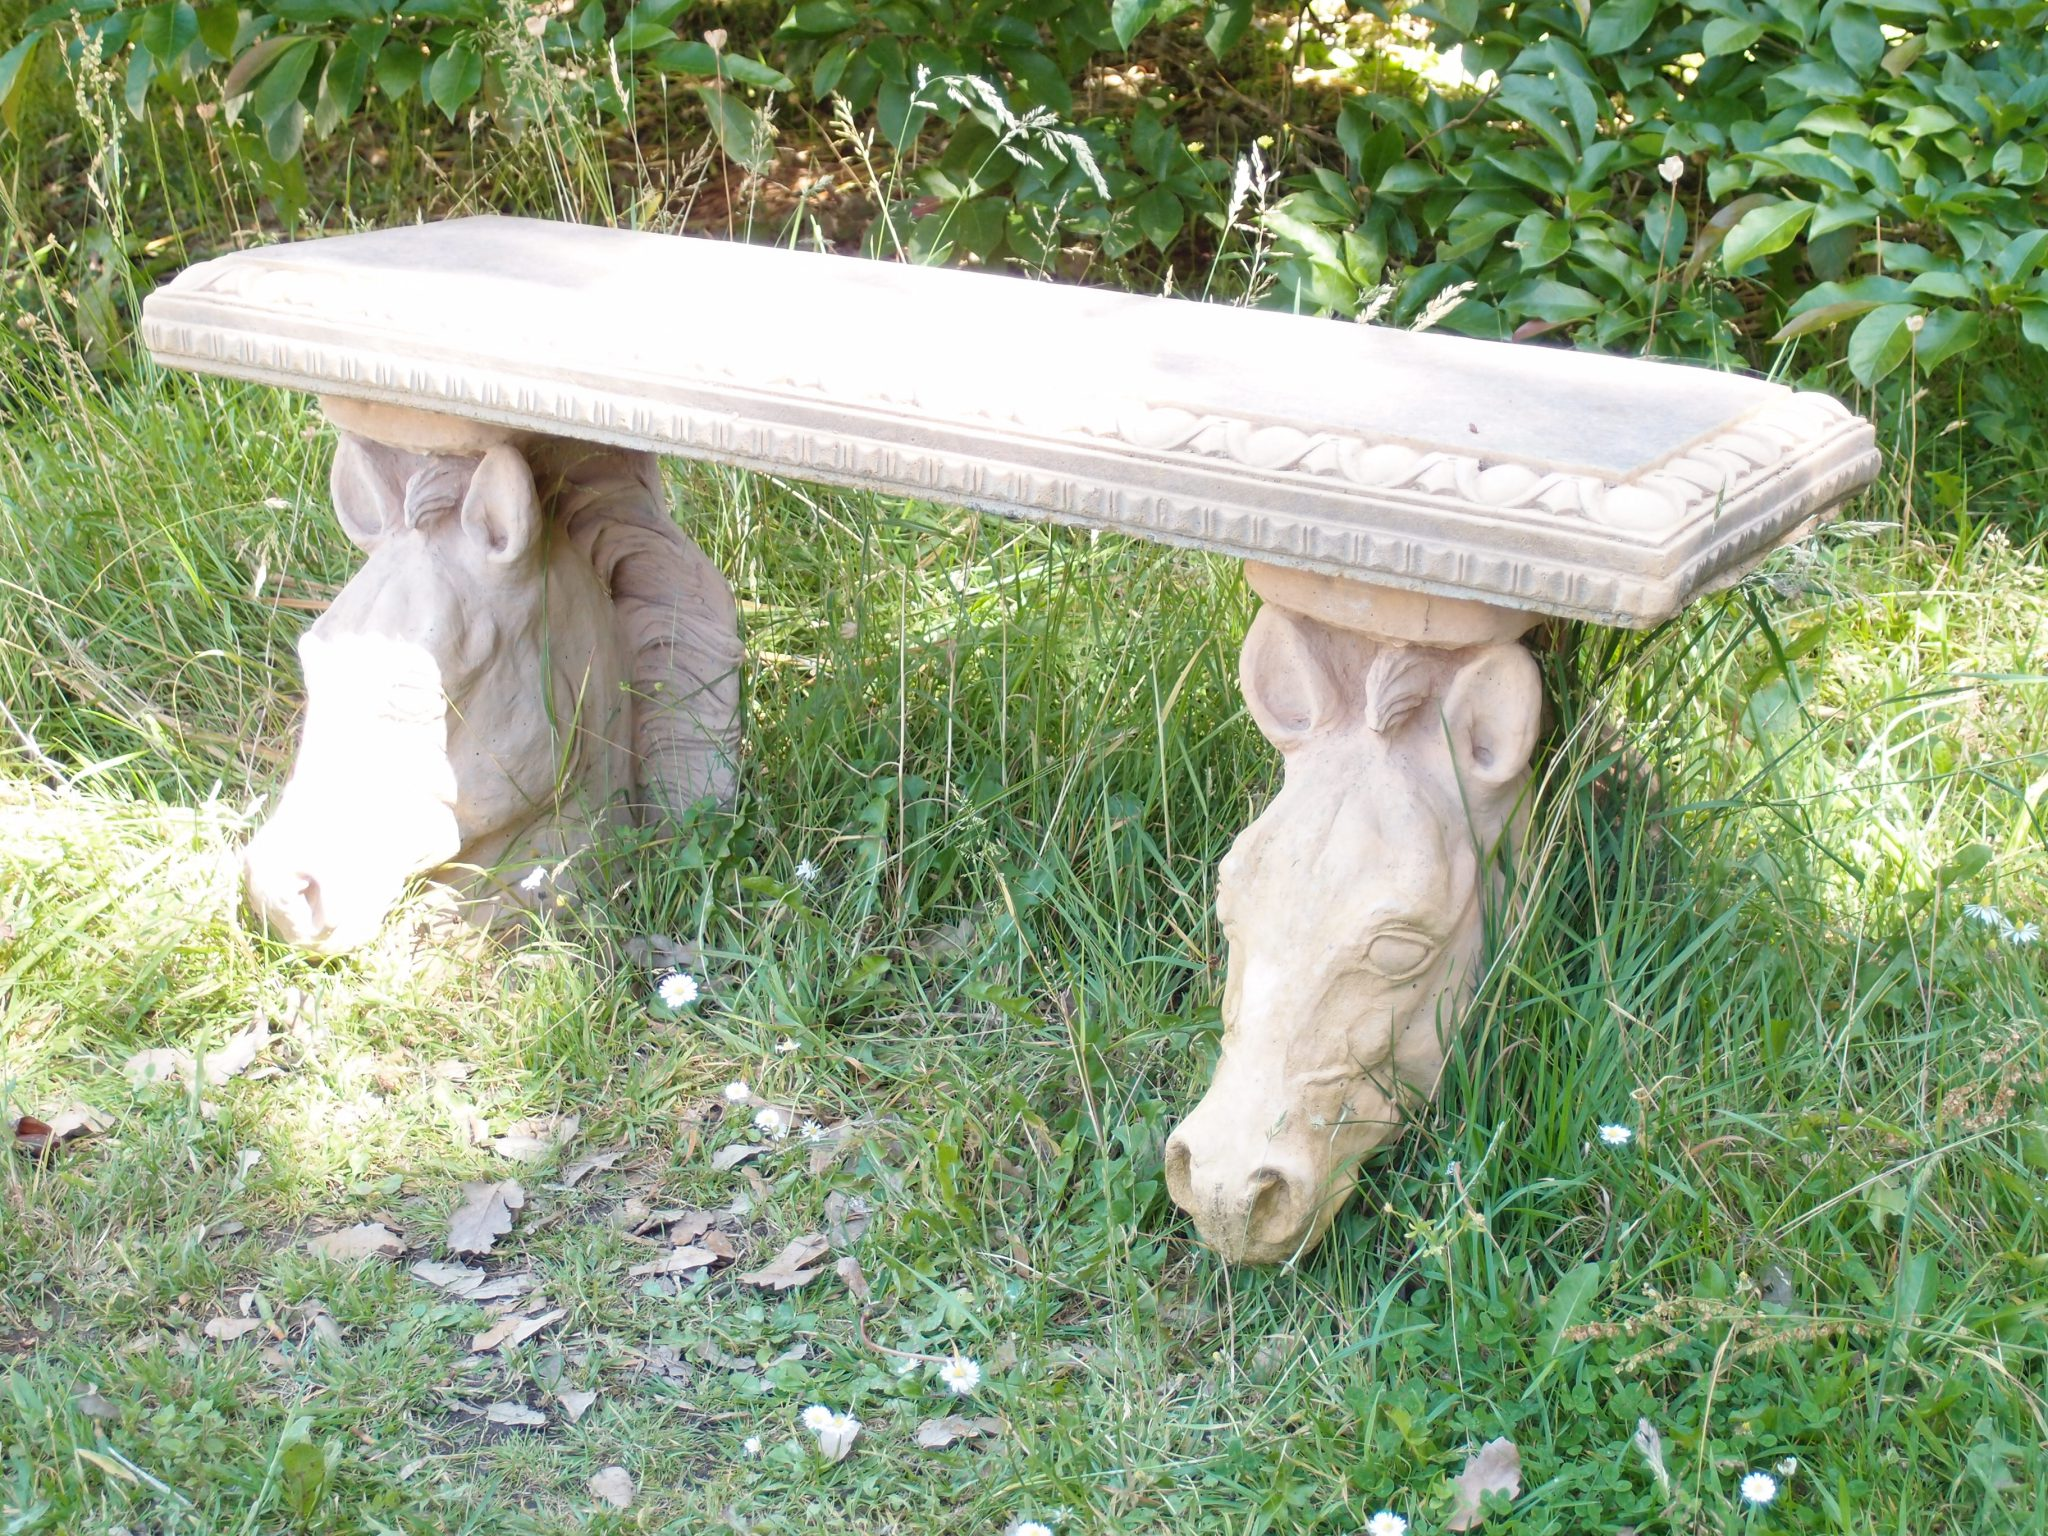 Just past the eastern gate to the Cider House Garden, we came upon this beautiful but slightly disturbing bench. (Horses' heads immediately lead to thoughts of that grisly scene in GODFATHER ONE.)